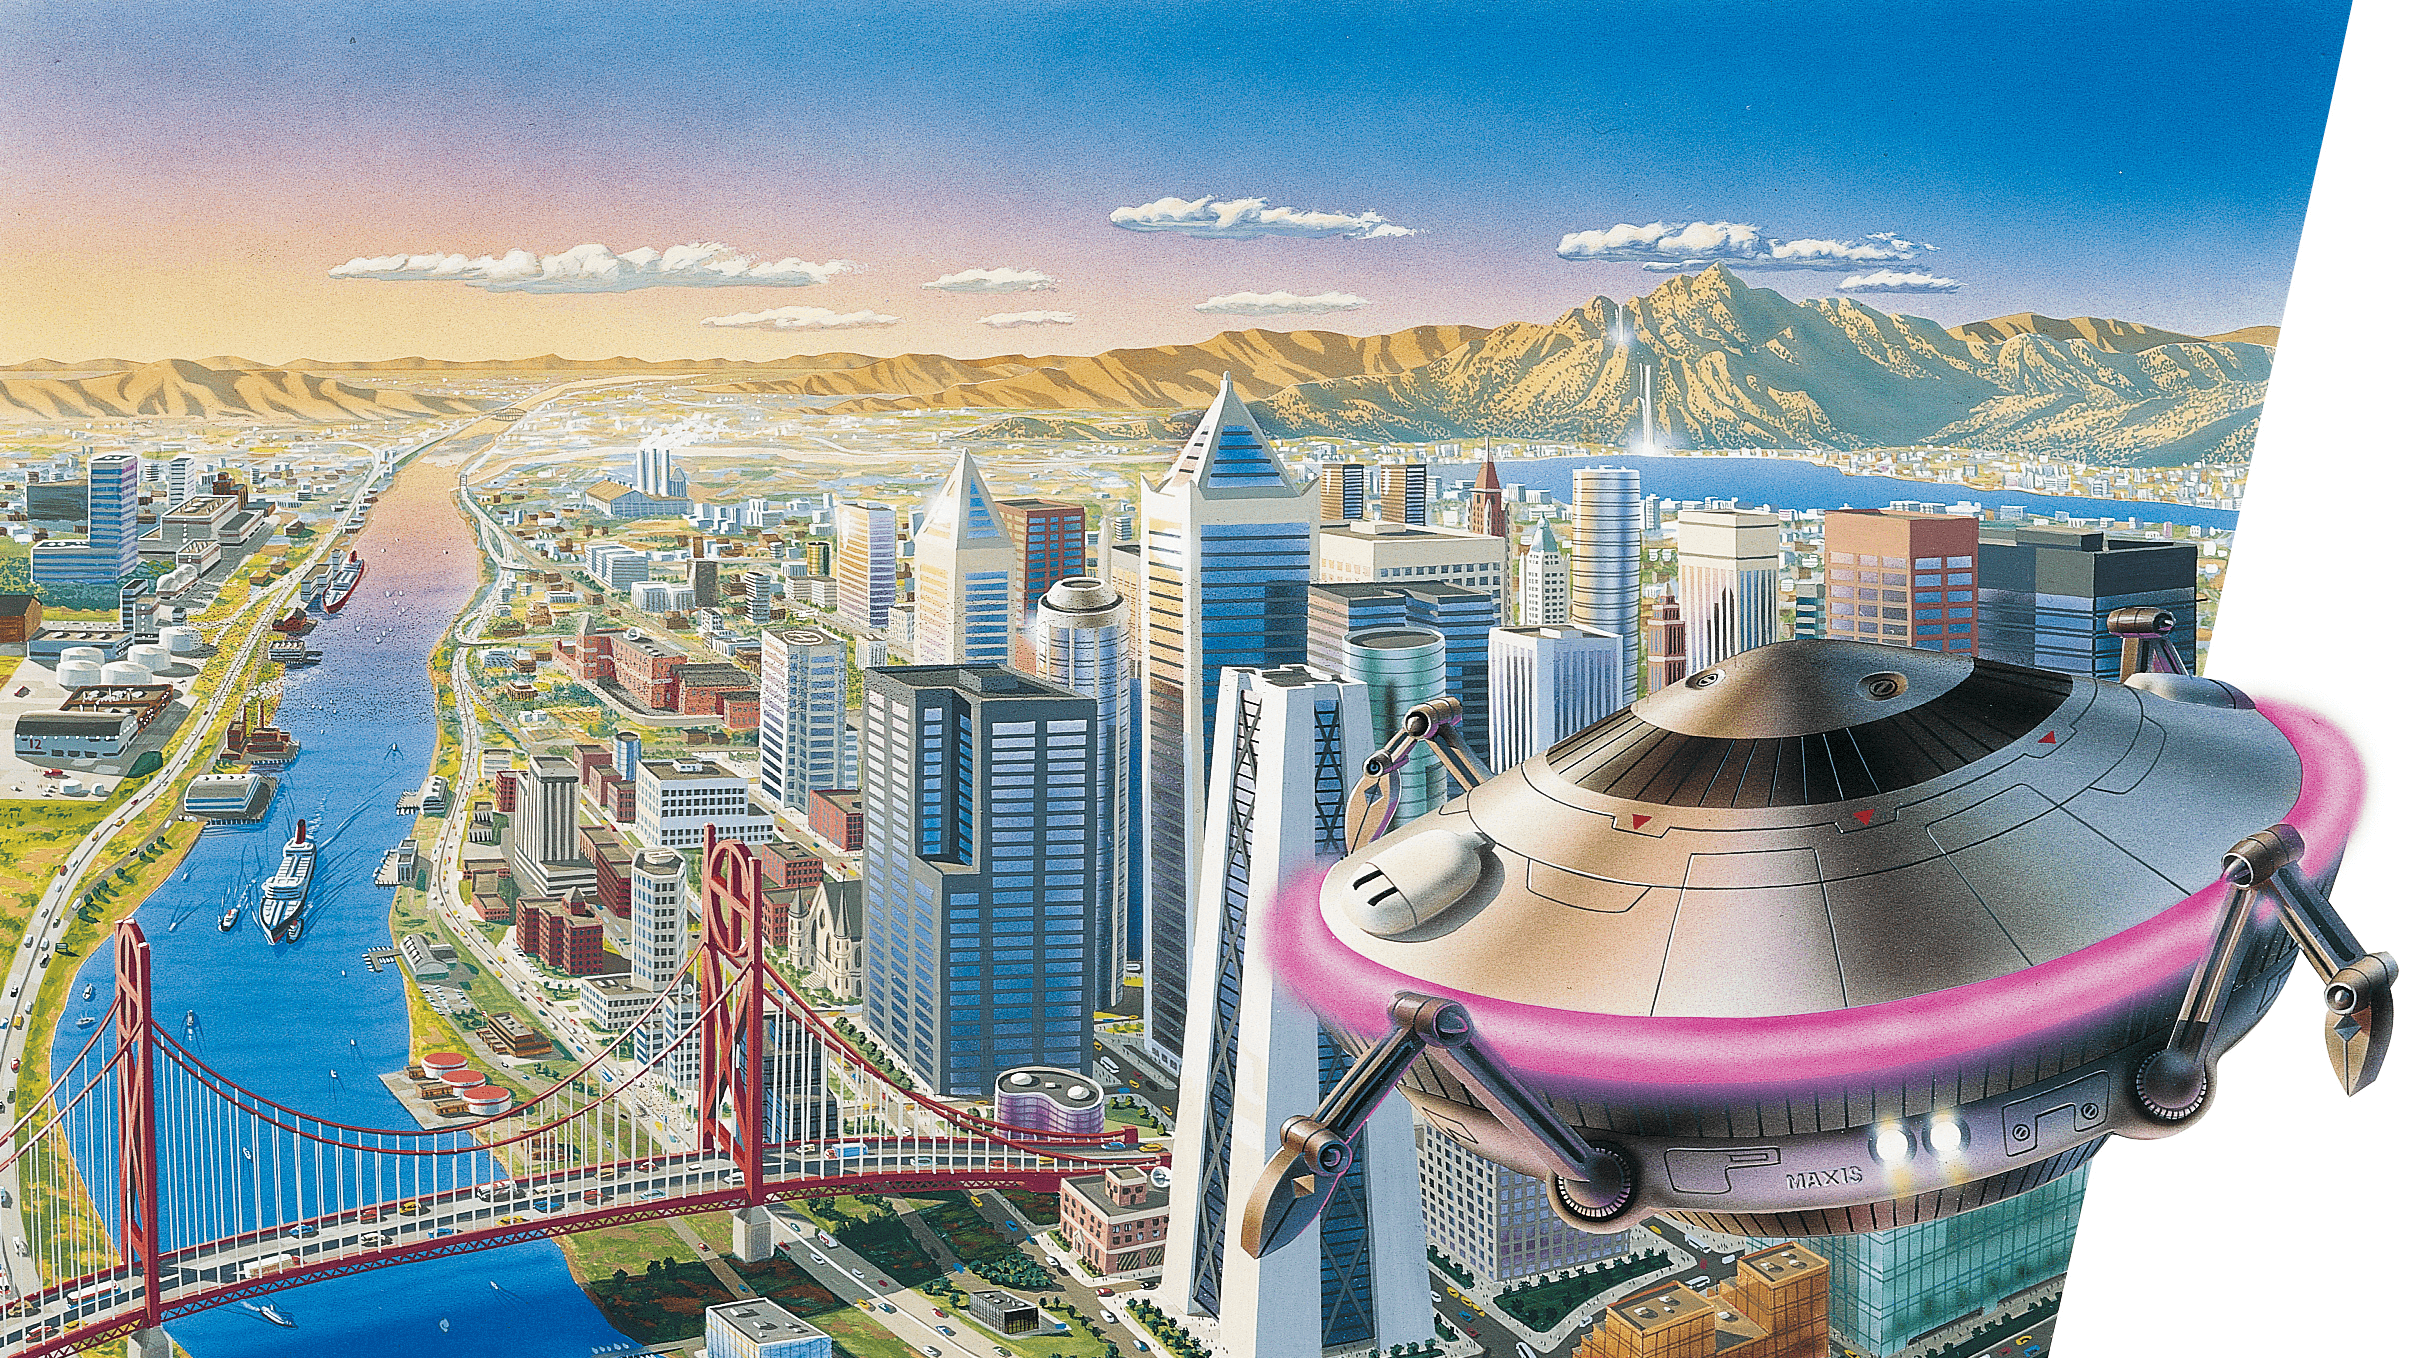 SimCity 2000 [2415x1358] : wallpapers